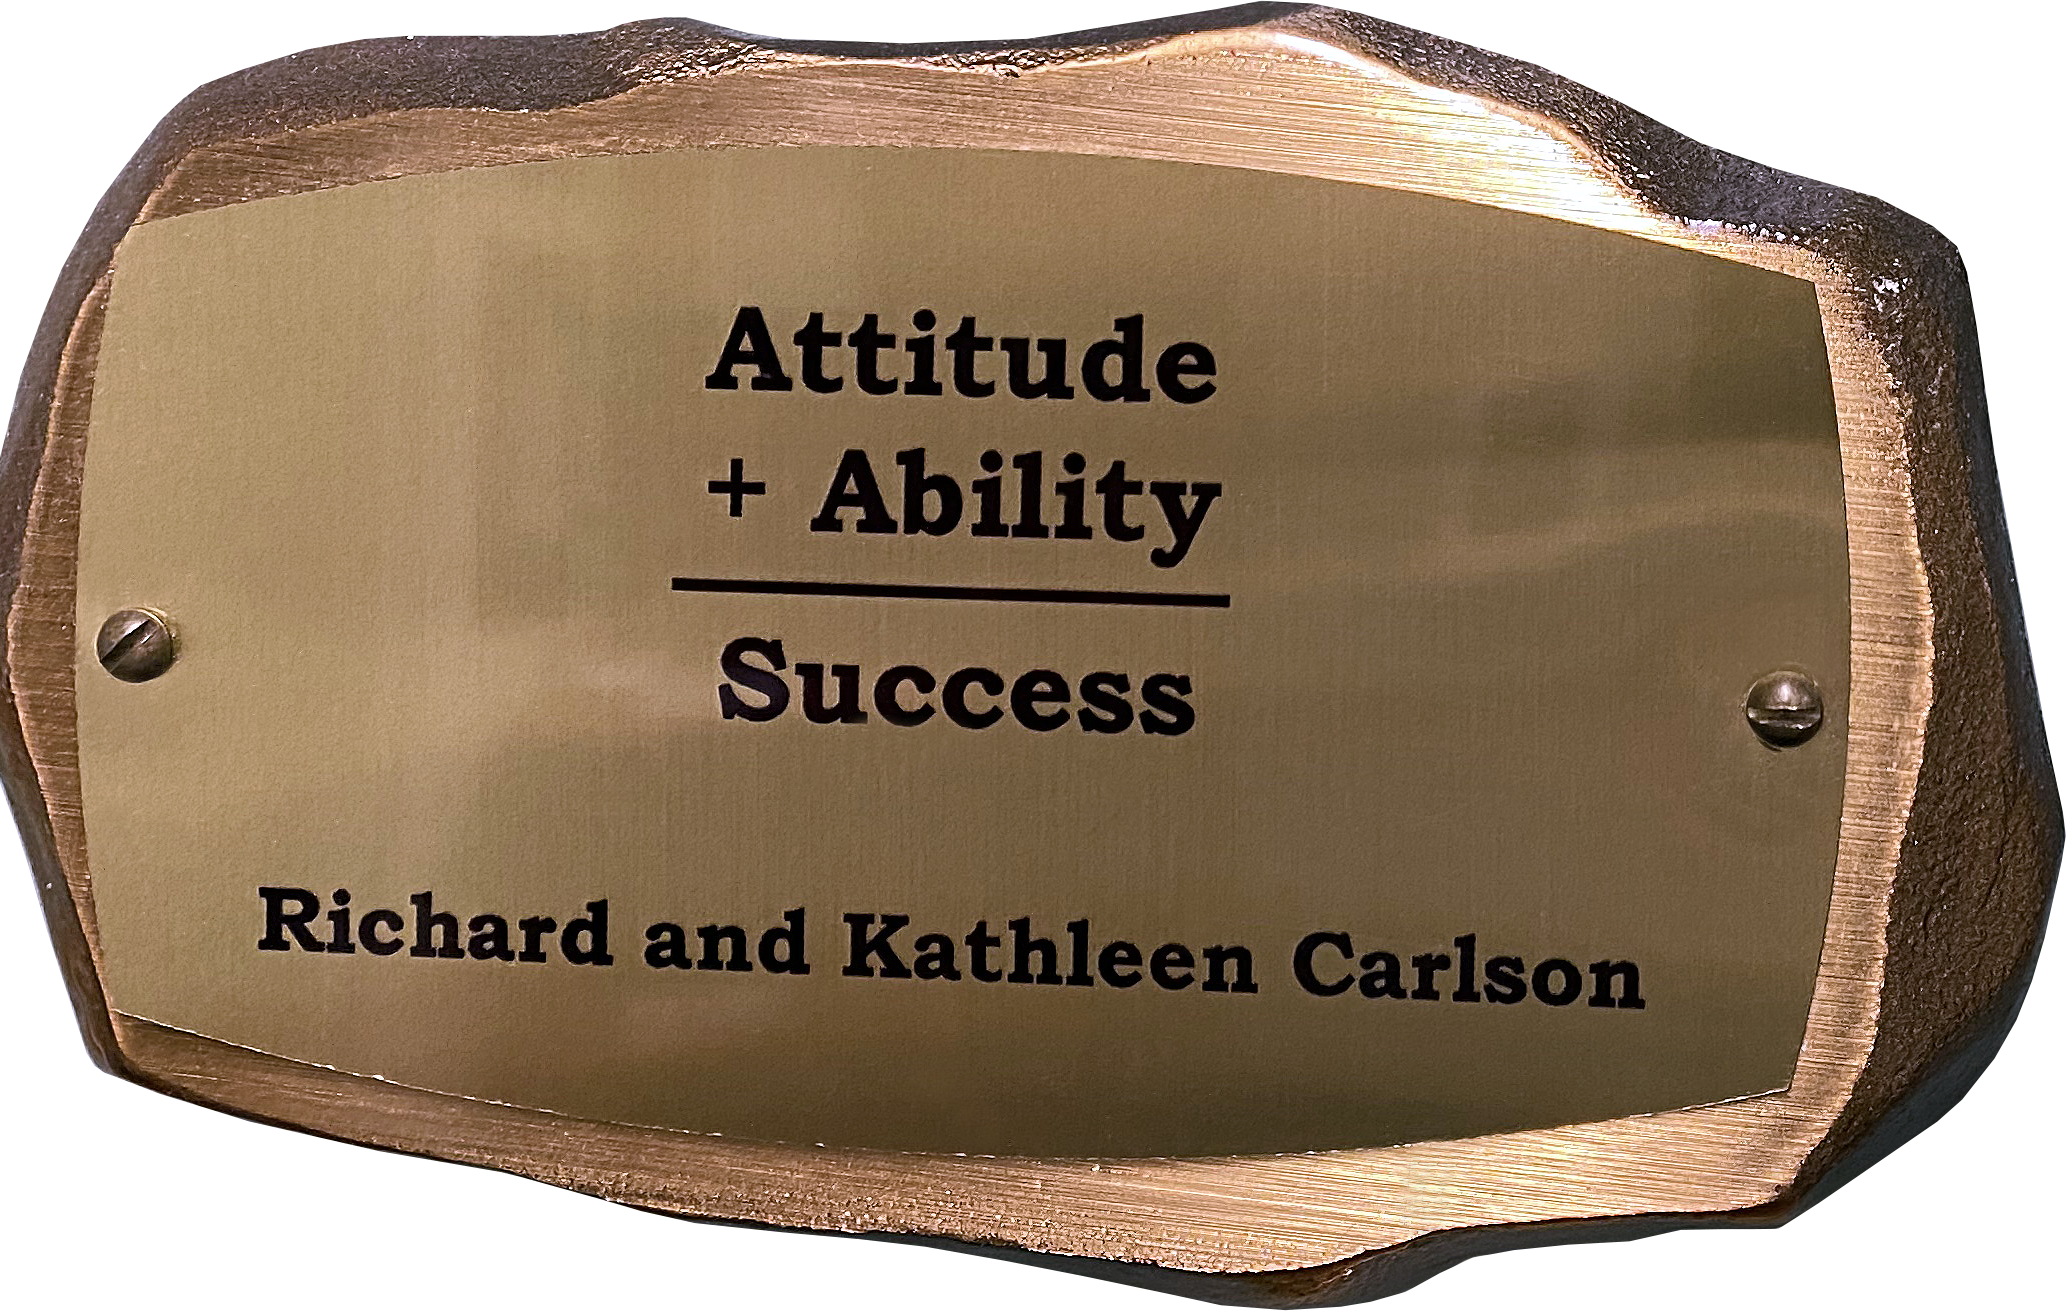 Inscribed bronze plaque in the shape of a rock with text on it reading: Attitude + Ability = Success. Richard and Kathleen Carlson